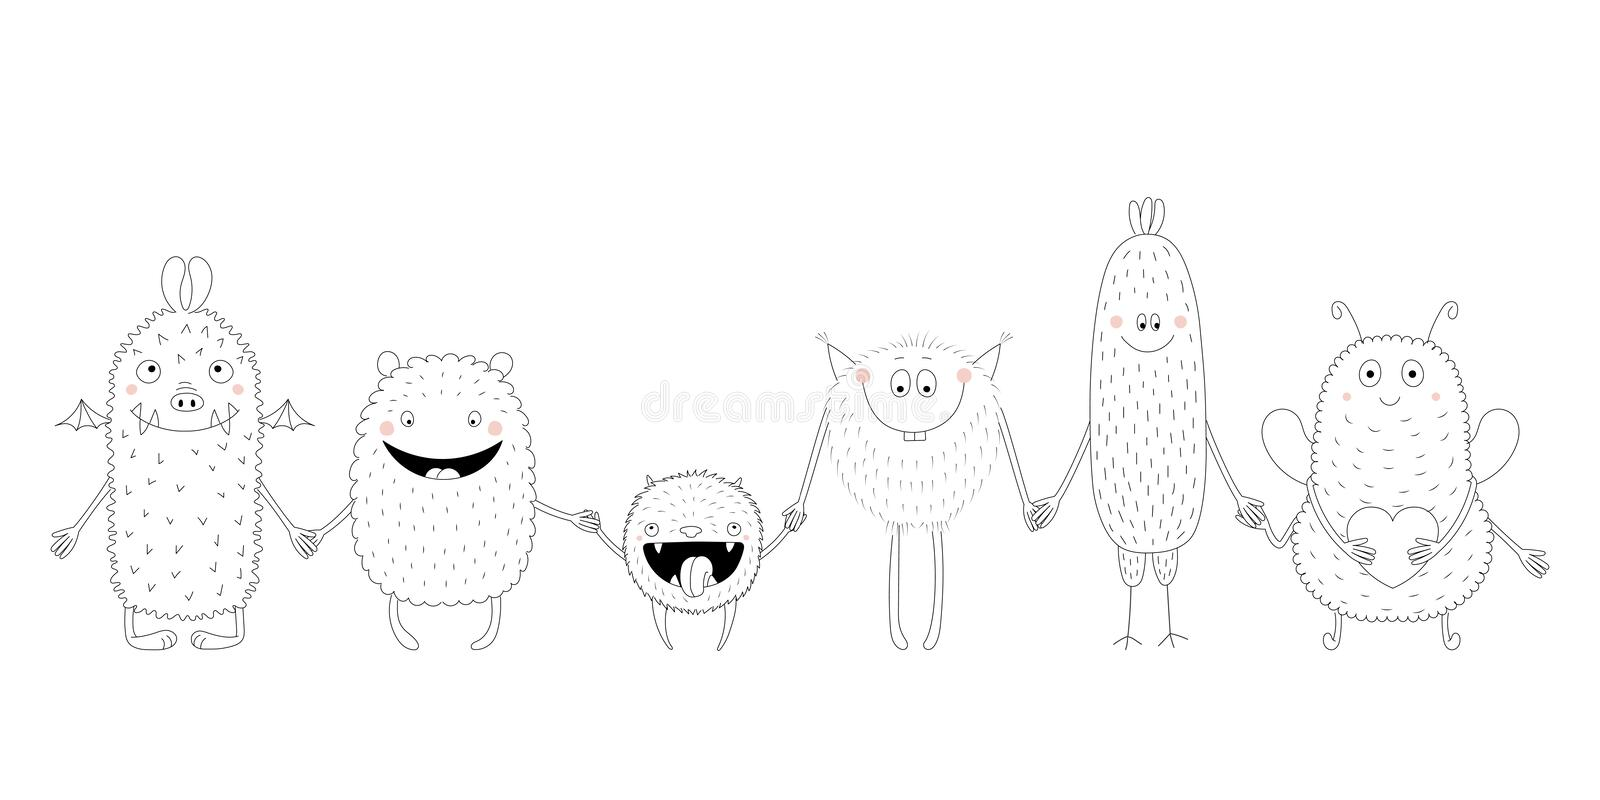 Cute monsters coloring pages. Hand drawn black and white vector illustration of of cute funny monsters smiling and holding hands. Isolated objects. Design vector illustration